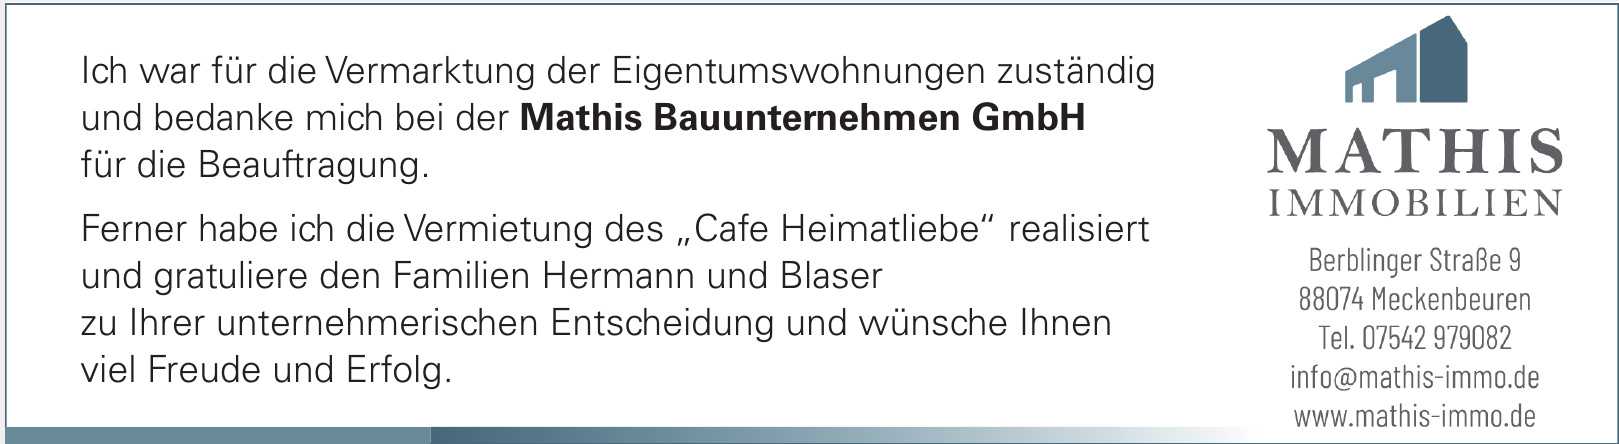 Mathis Immobilien